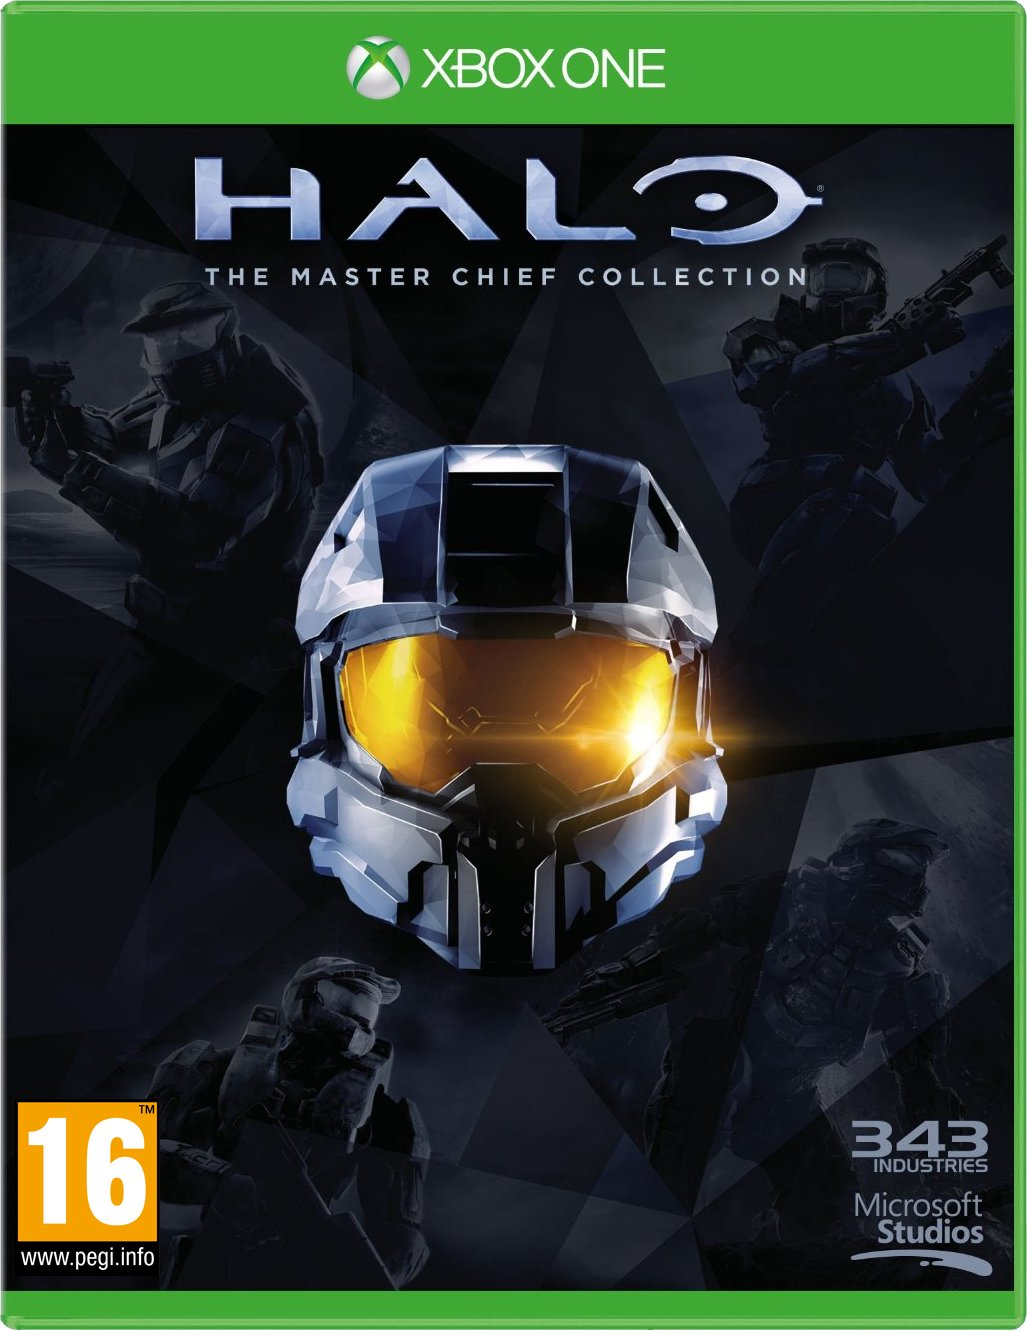 Halo: The Master Chief Collection (Xbox One) product image